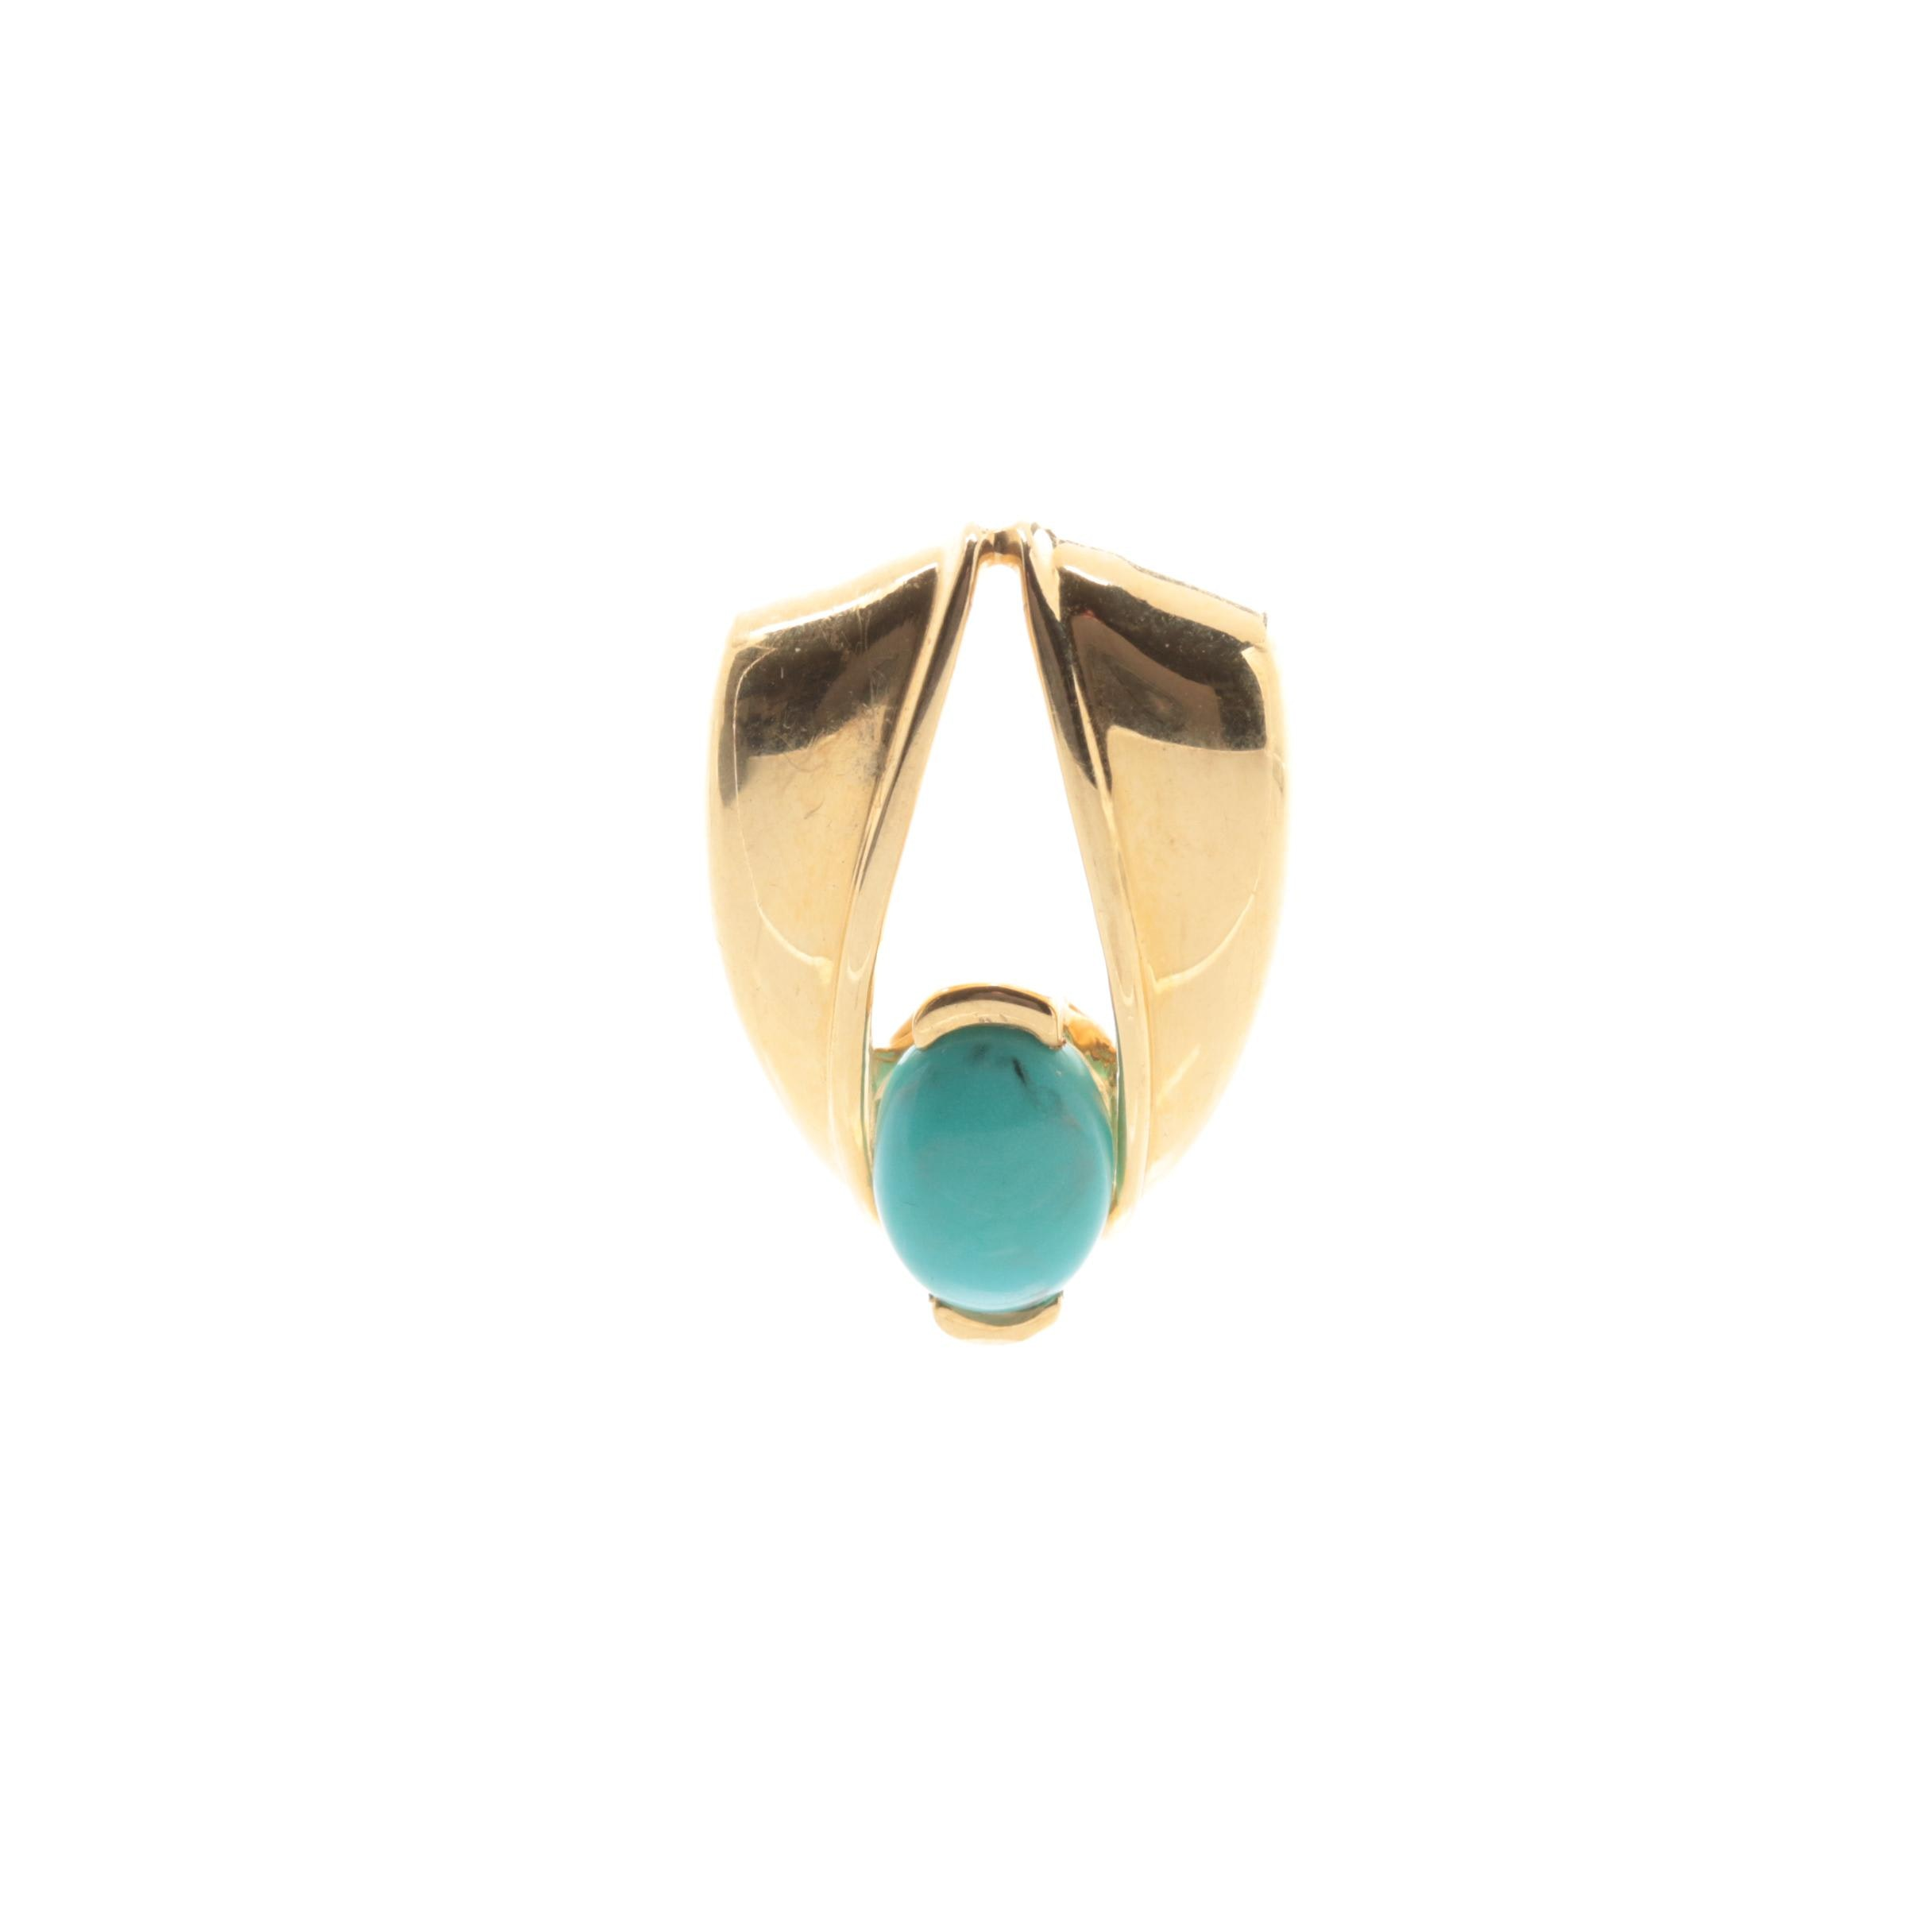 18K Yellow Gold Turquoise Pendant